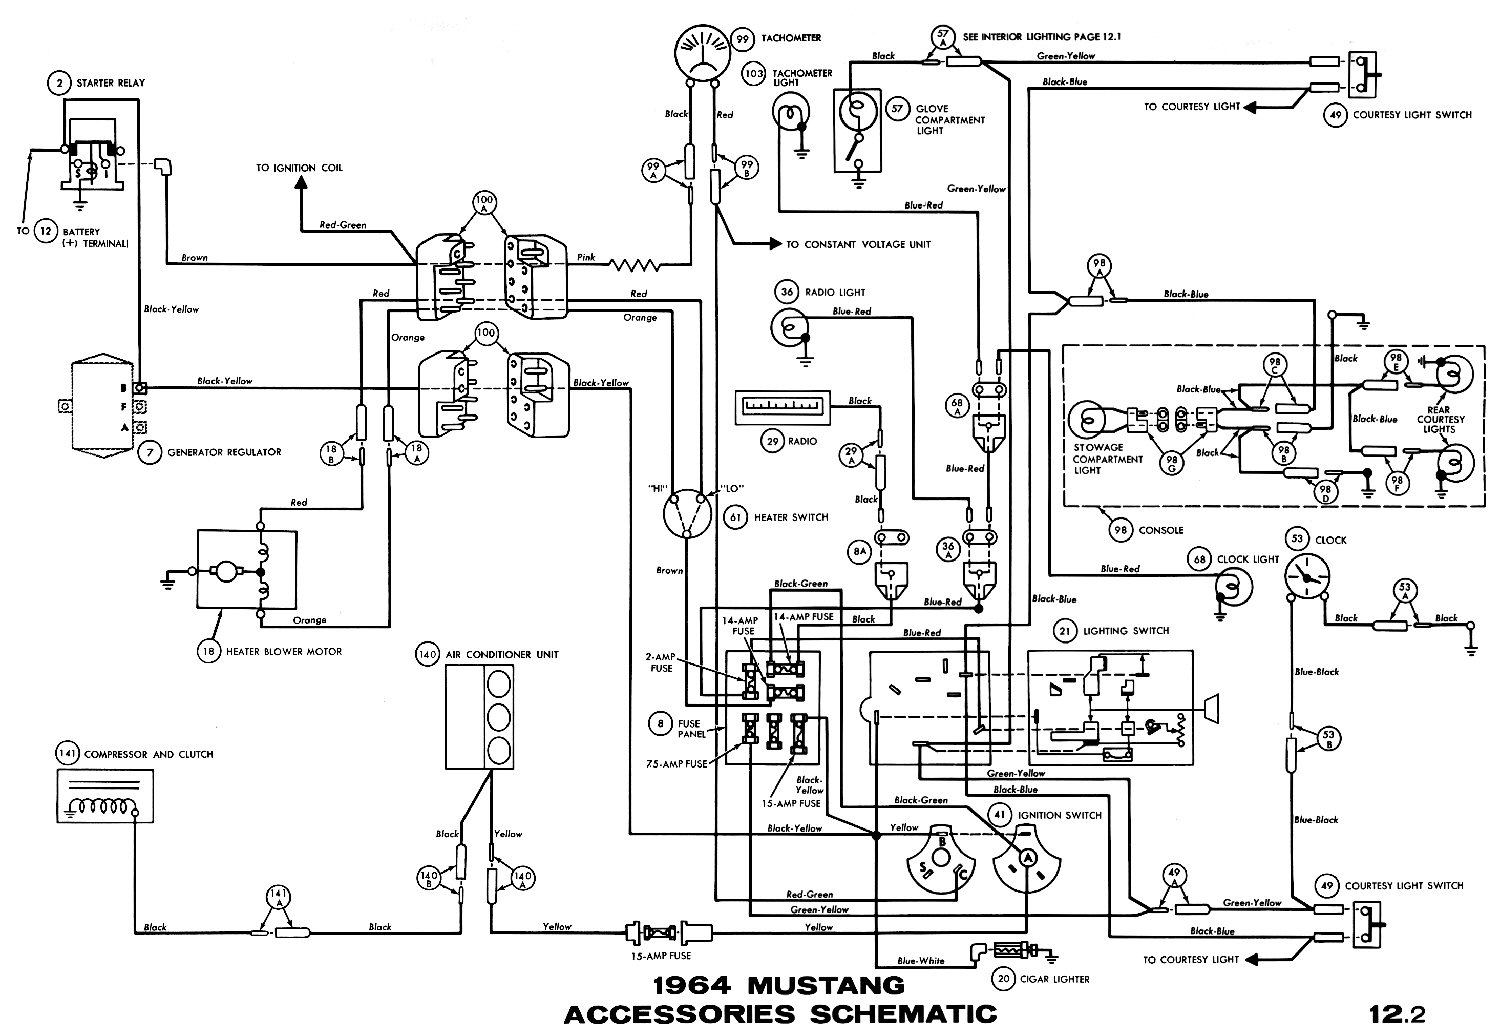 66 mustang wiring diagram for dash 71 mustang wiring diagram for horn